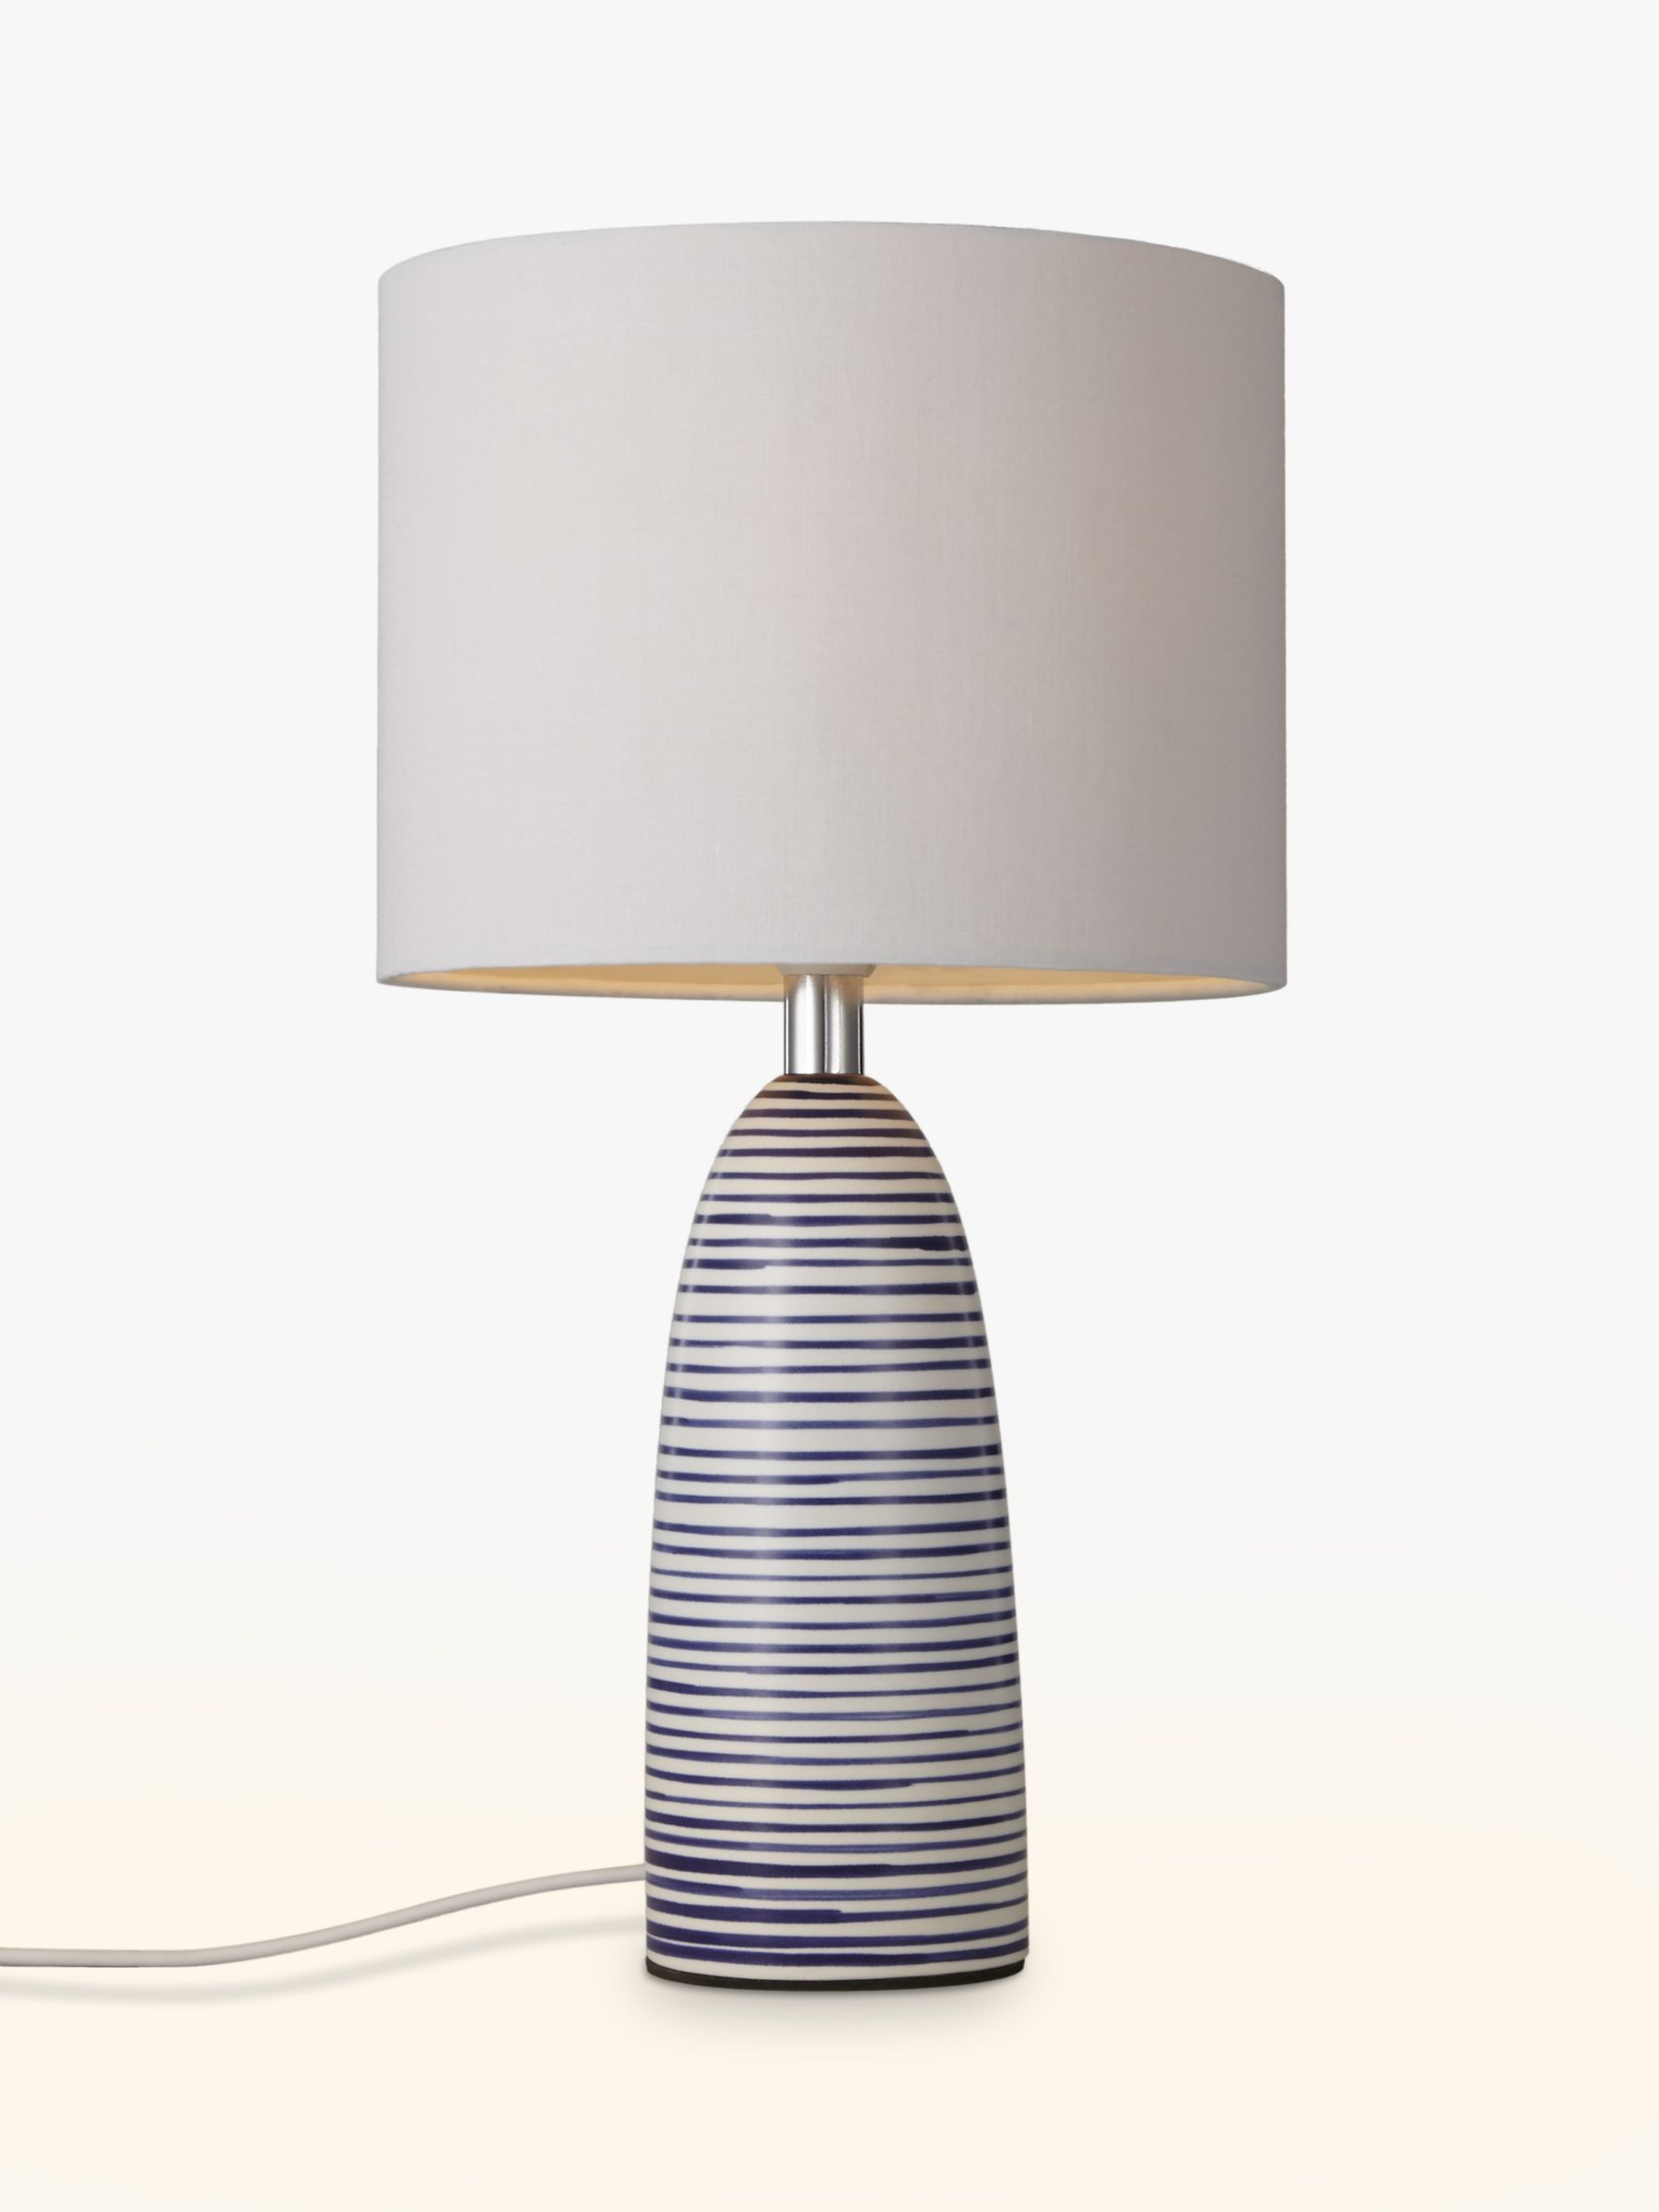 White bedroom lamps buy john lewis lolly table lamp john lewis geotapseo Image collections